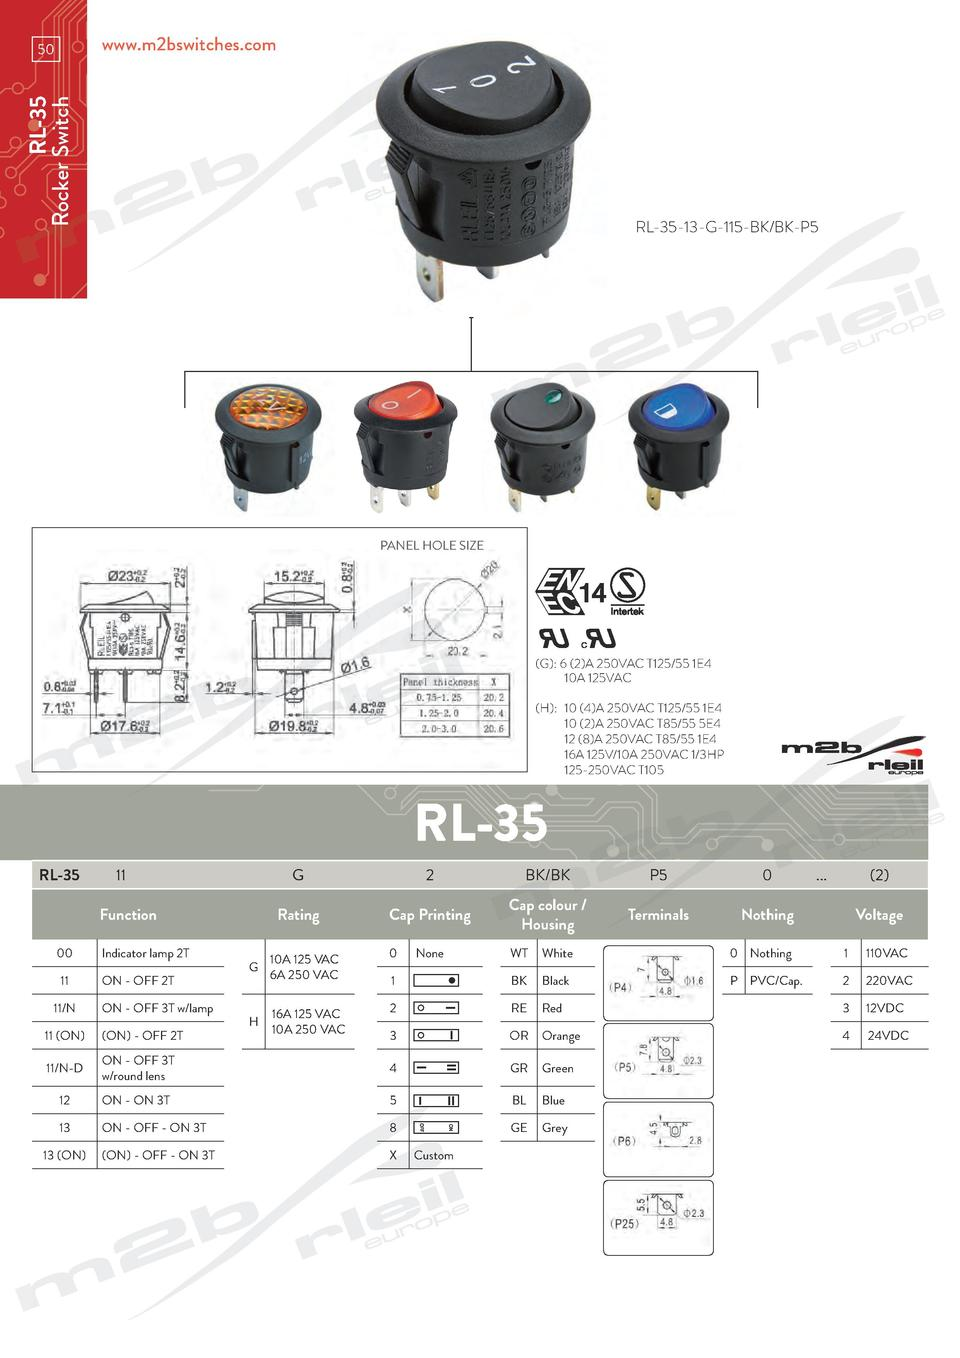 www.m2bswitches.com  RL-35 Rocker Switch  50  RL-35-13-G-115-BK BK-P5  PANEL HOLE SIZE   G   6  2 A 250VAC T125 55 1E4   1...